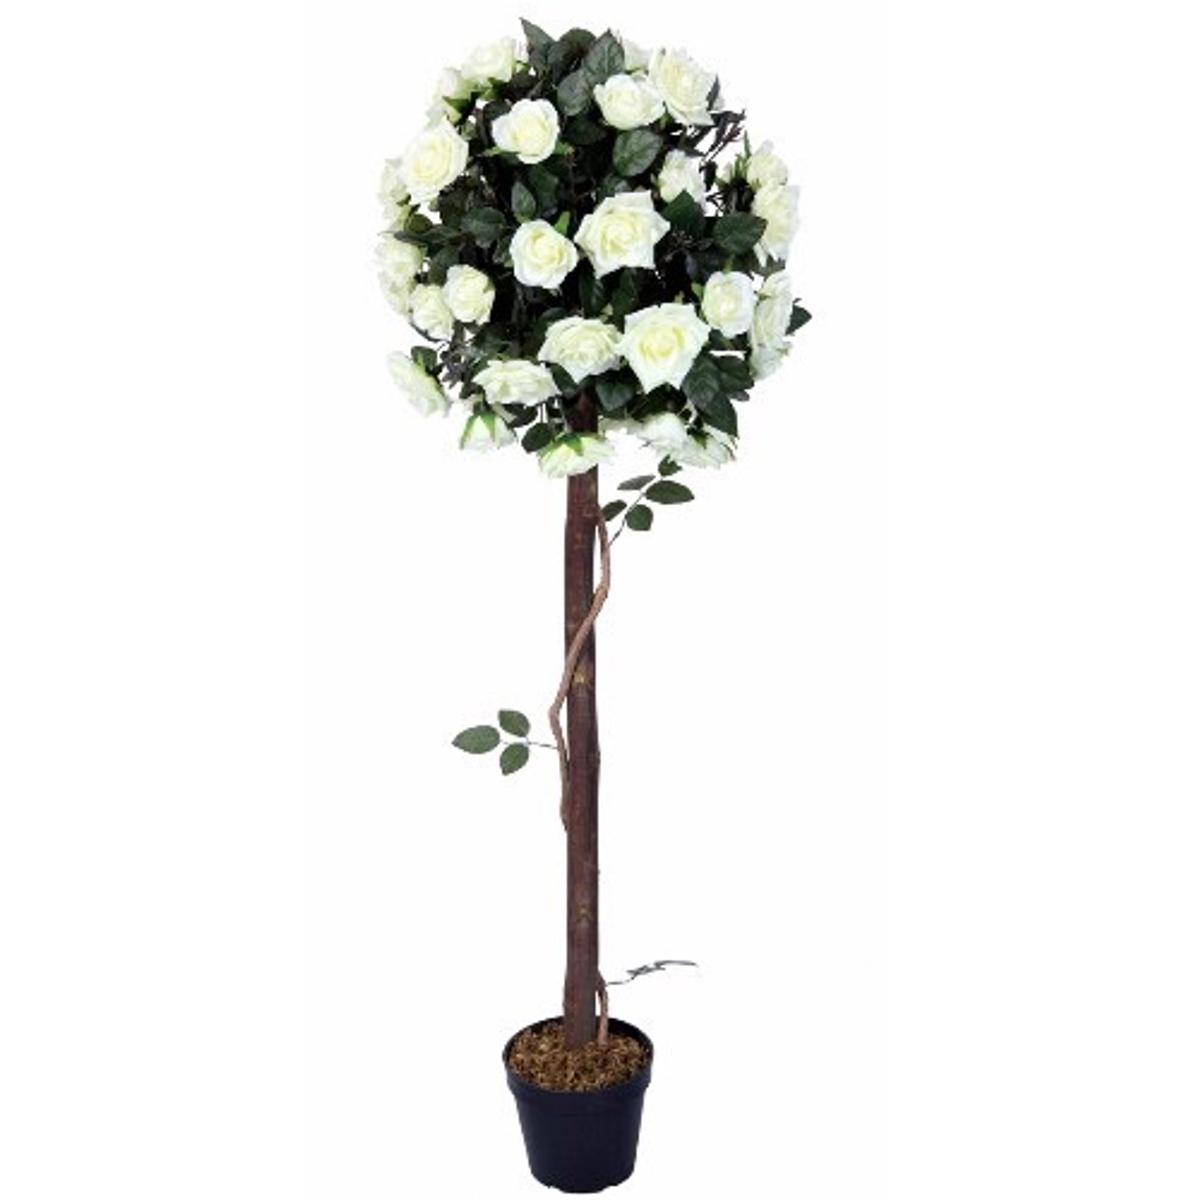 Artificial White Flower Topiary Trees X2 In Wa3 Lowton For 20 00 For Sale Shpock